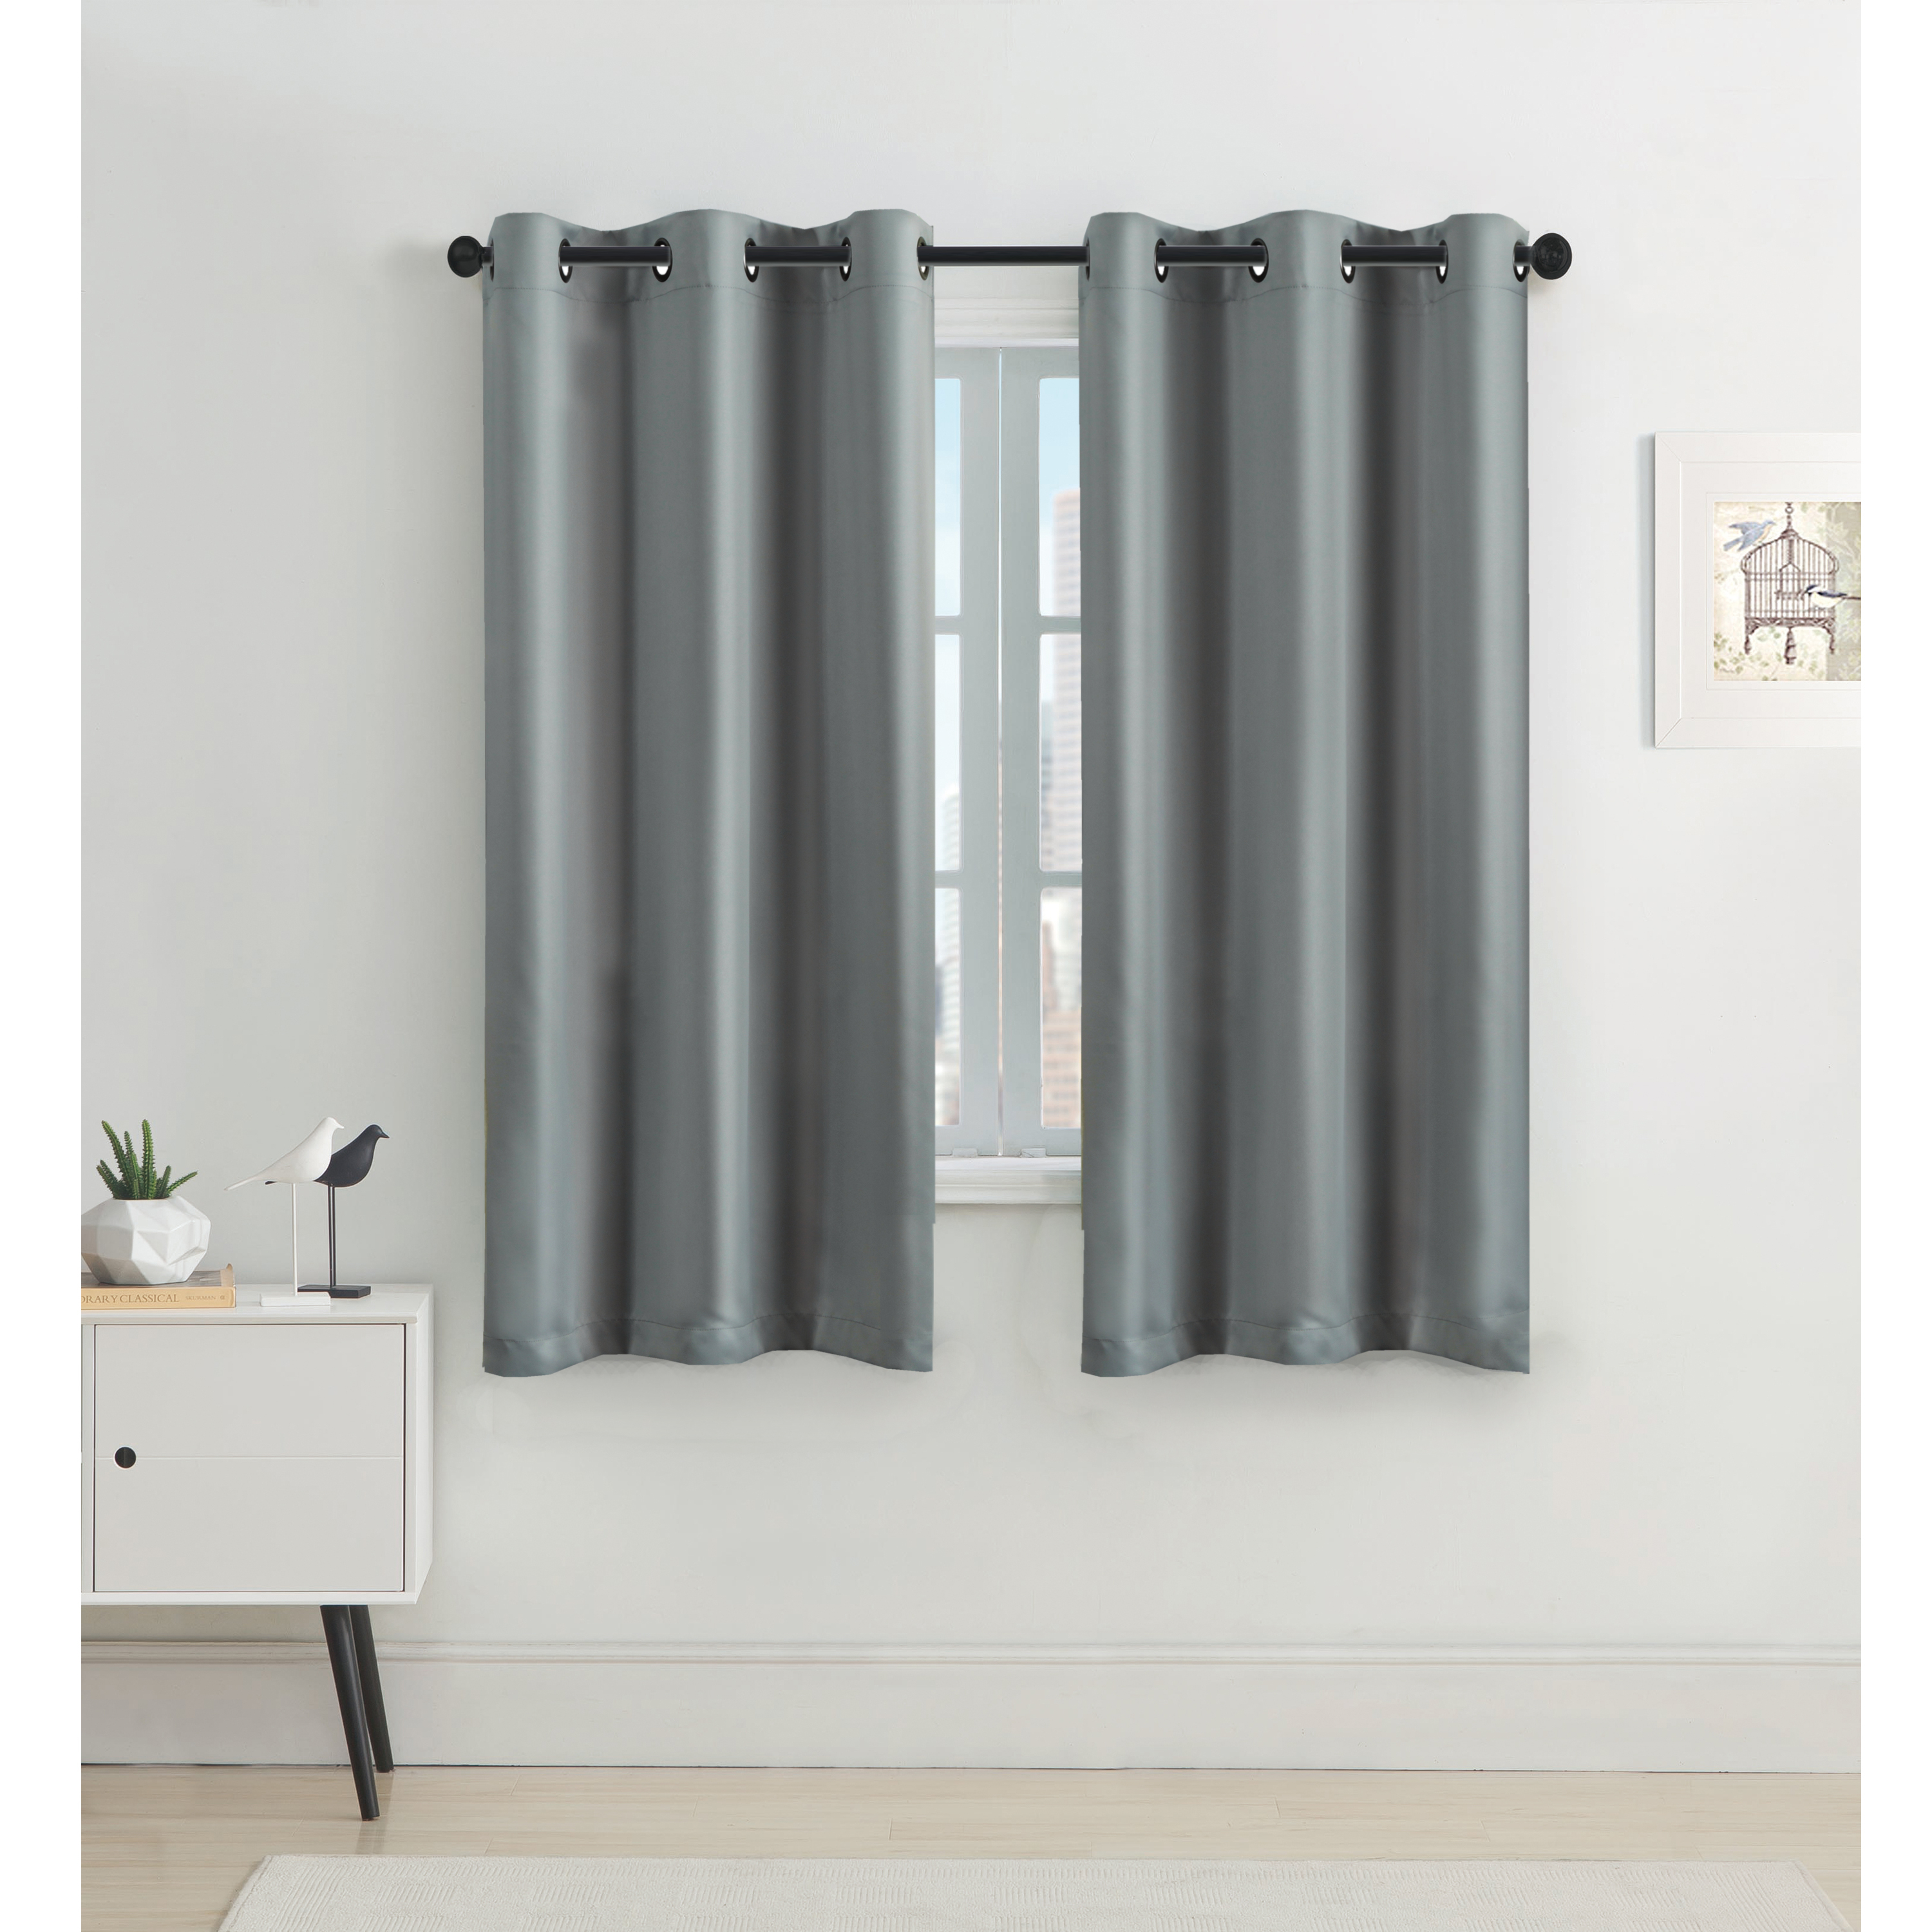 Bedroom Blackout Curtain Panel Home Fashion All Season Solid Grommet Top Curtain / Panel, 42w X L63 One Panel Dove Gray Regarding All Seasons Blackout Window Curtains (View 12 of 20)